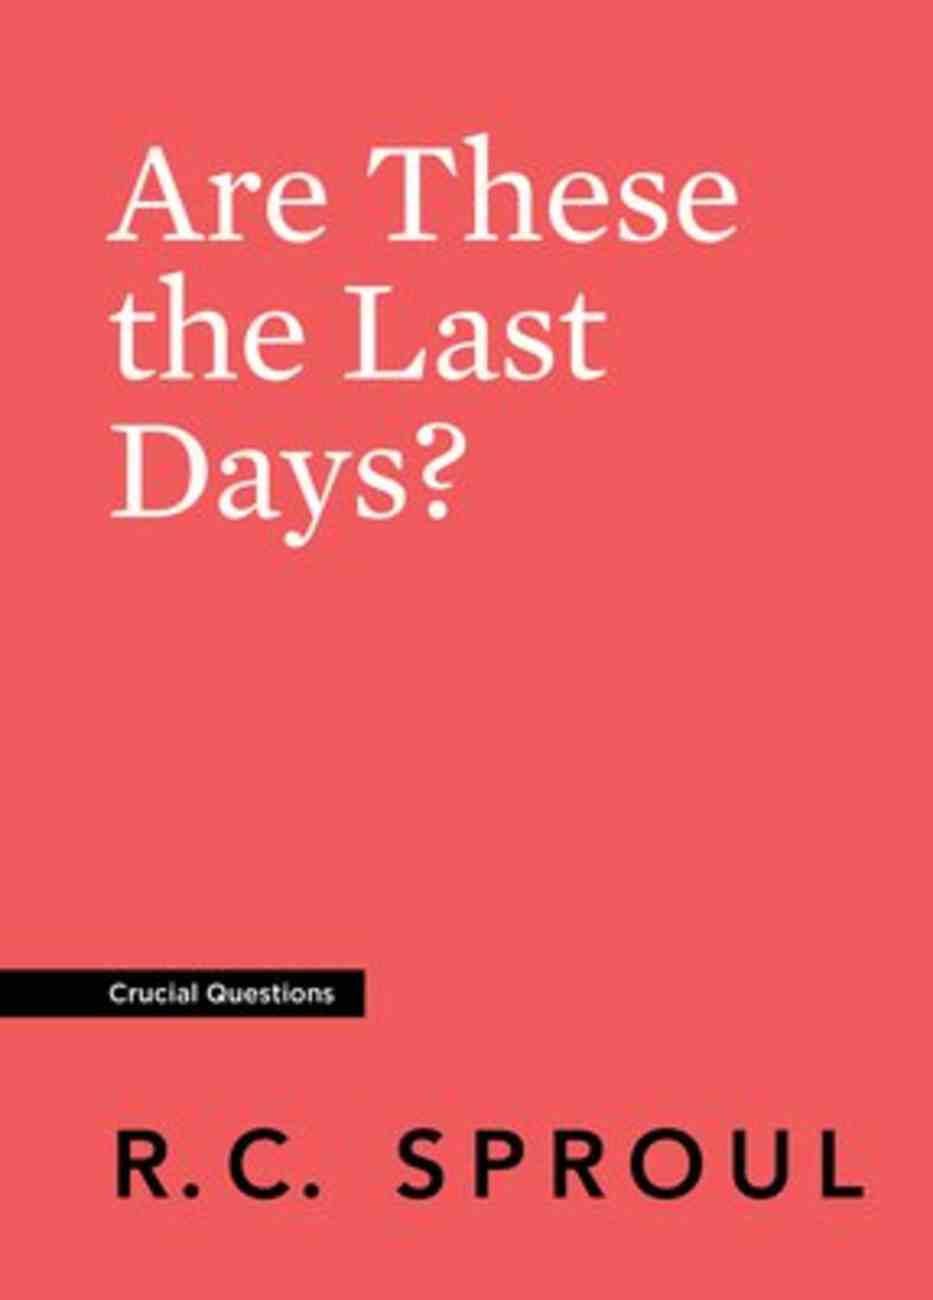 Are These the Last Days? (#20 in Crucial Questions Series) Paperback